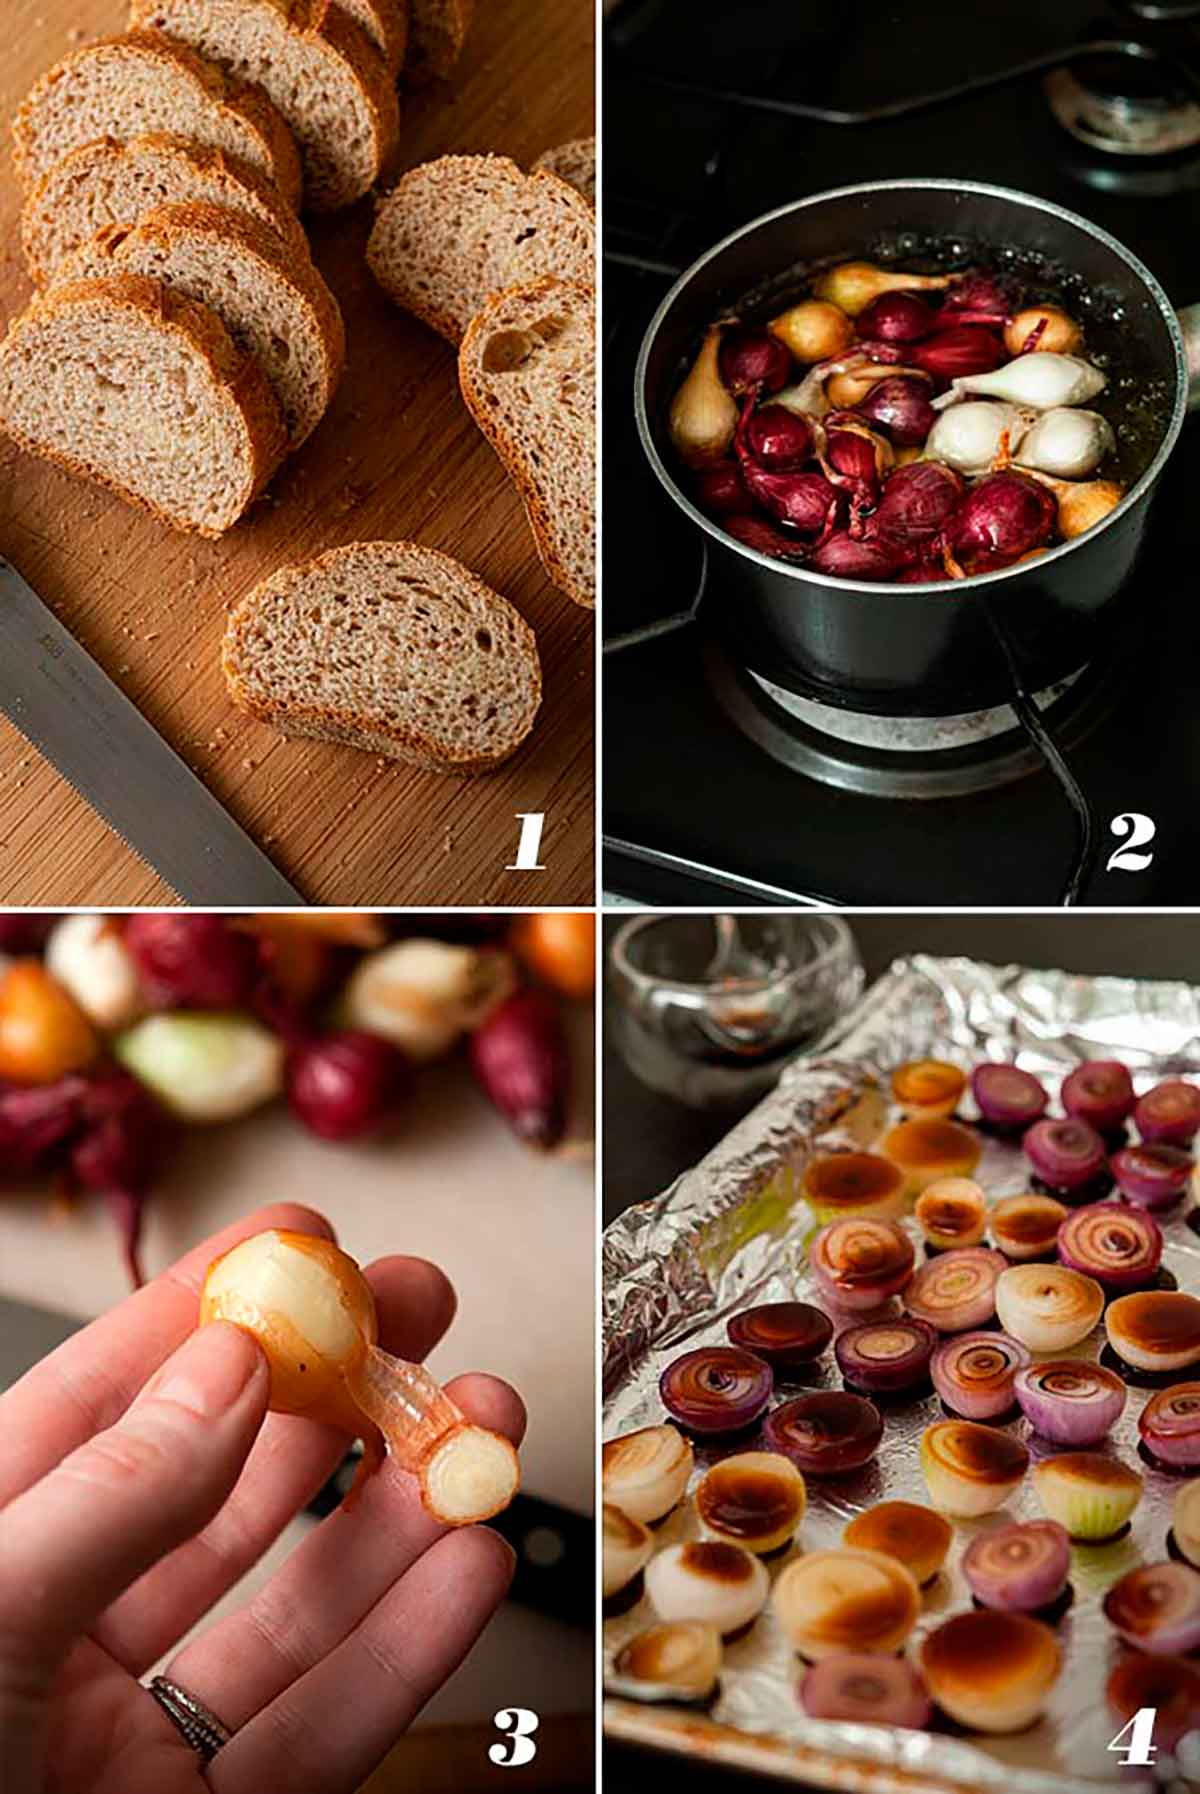 A collage of 4 numbered images showing how to slice bread and prep pearl onions for roasting.